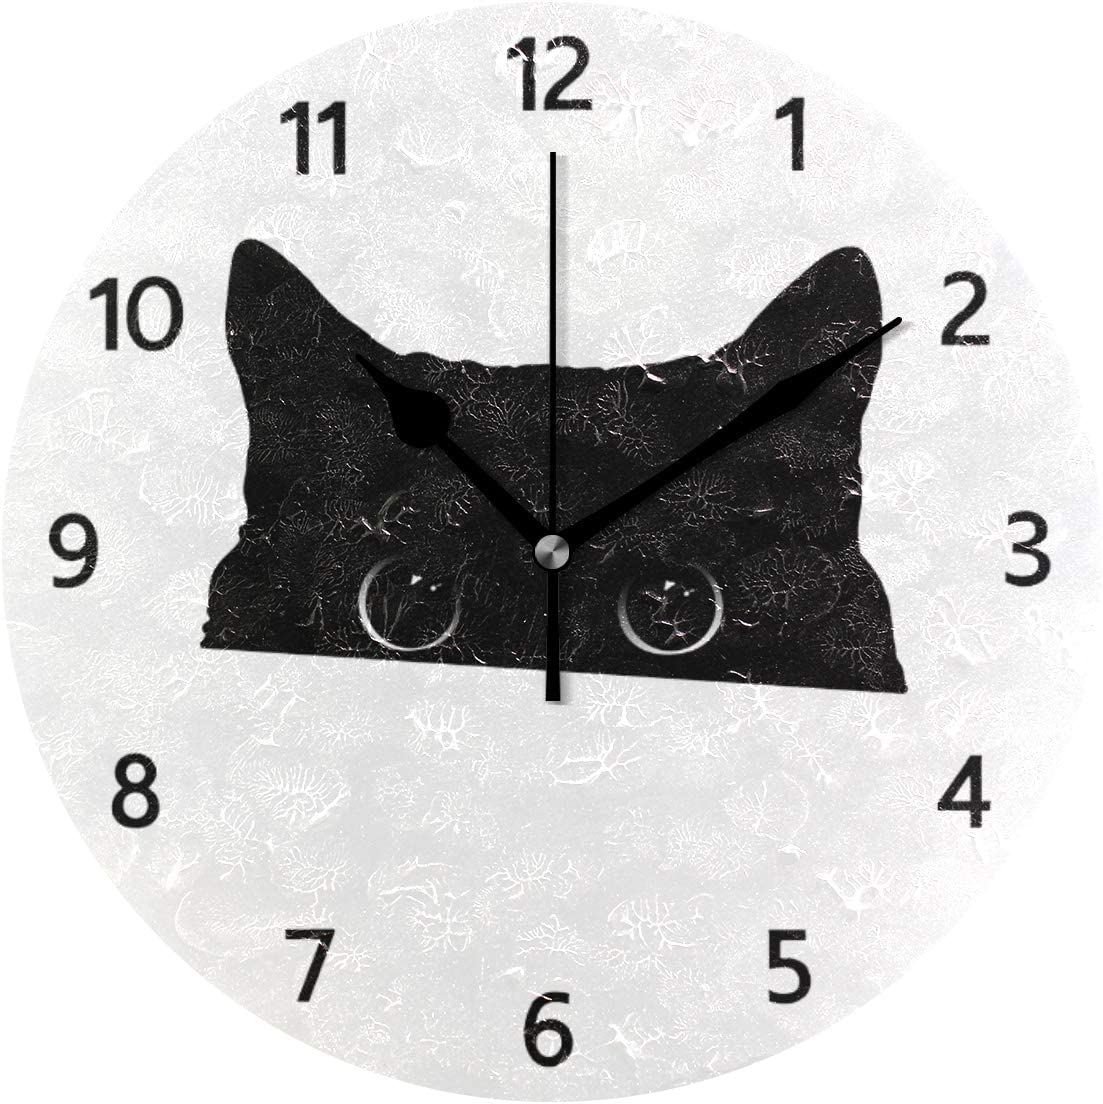 MERRYSUGAR Black Cat White Wall Clock Silent Non Ticking Digital Round Clock Desk Clock for Home Kitchen Office School Home Decor 9 Inch